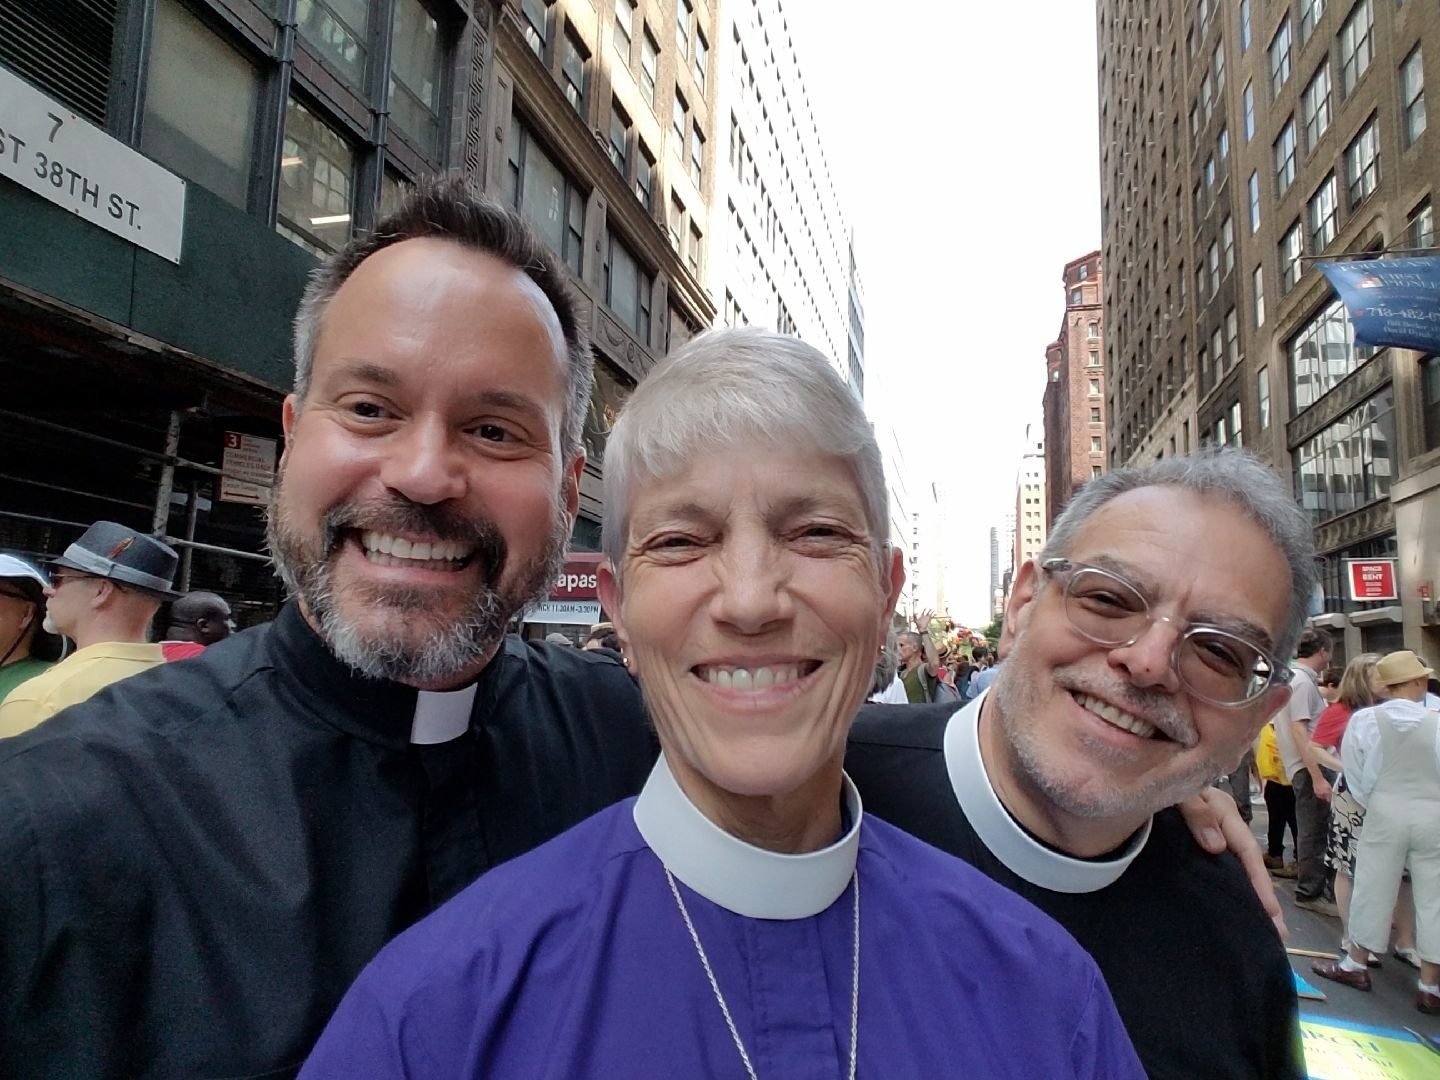 The Rev. J. Christopher Ballard, left, rector of Trinity-St. John's Church in Hewlett; the Right Rev. Mary D. Glasspool, assistant bishop of the Episcopal Diocese of New York; and the Rev. Michael Delaney, canon pastor of the Cathedral of the Incarnation in Garden City, attended the New York City Pride Parade last year.